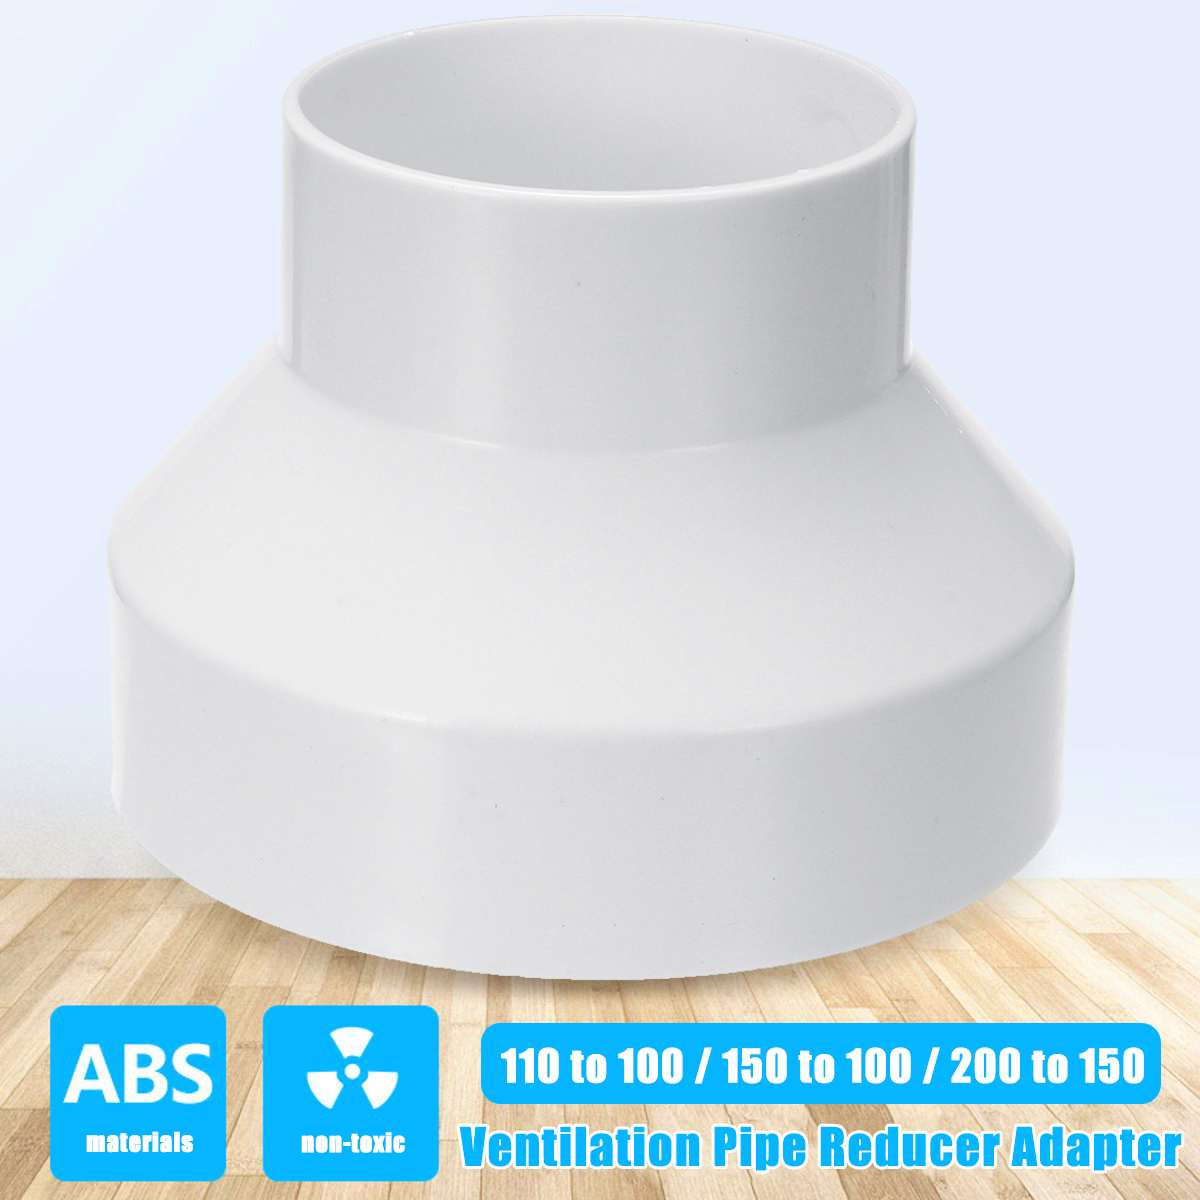 Ventilation Pipe Reducer Adapter Pipe Fittings 110 to 100 / <font><b>150</b></font> to 100 / <font><b>200</b></font> to <font><b>150</b></font> ABS New Arrival image